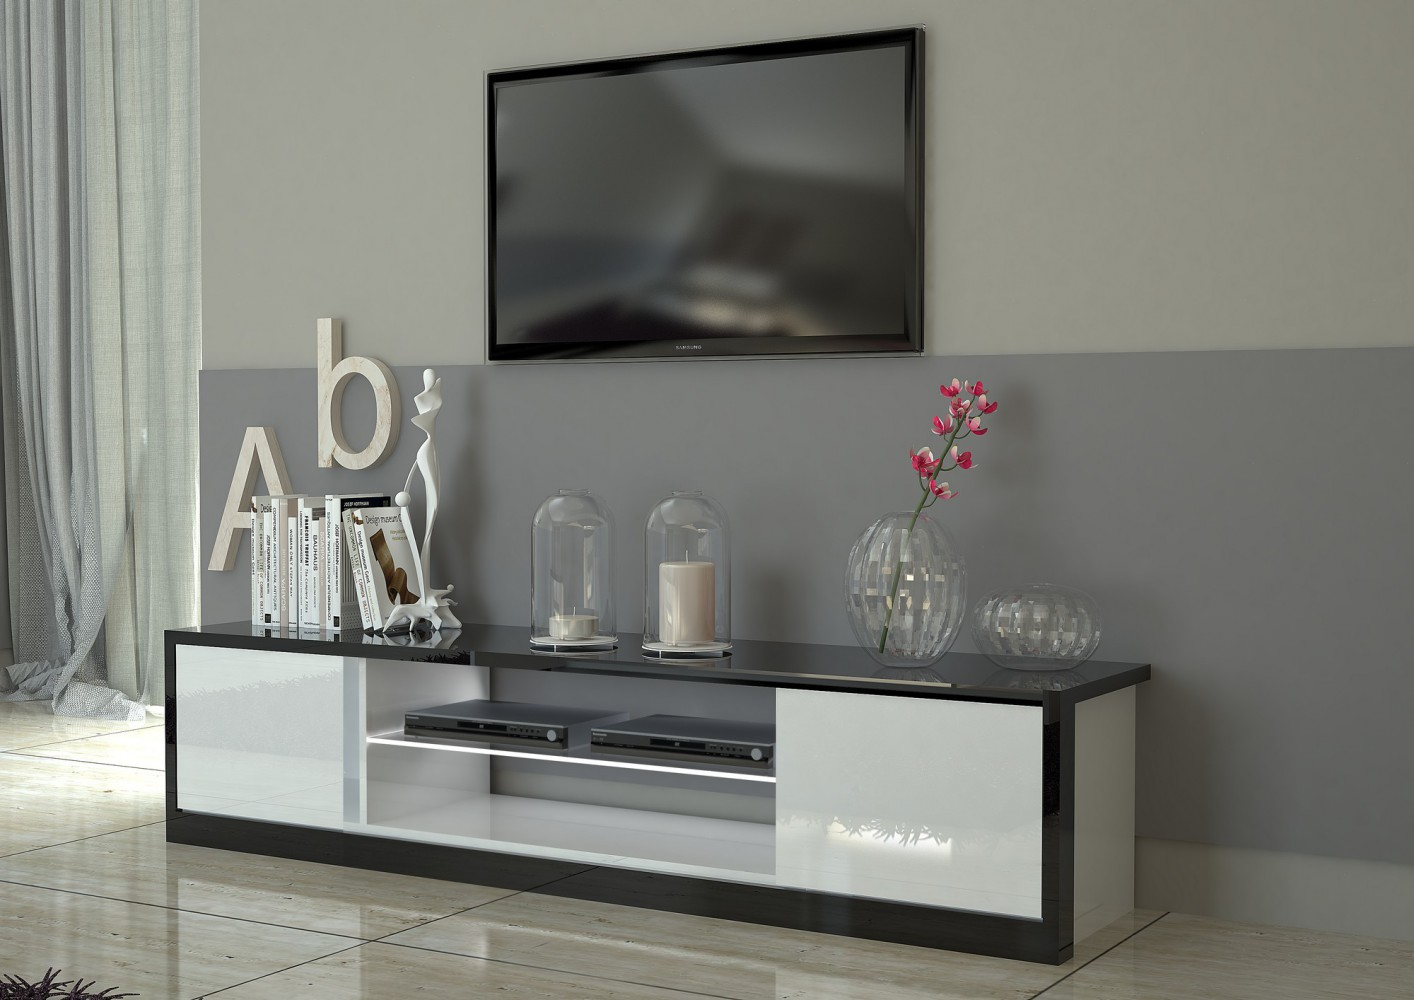 tecnos mito lowboard 180cm wohnwand mediawand italian design modern neu ebay. Black Bedroom Furniture Sets. Home Design Ideas